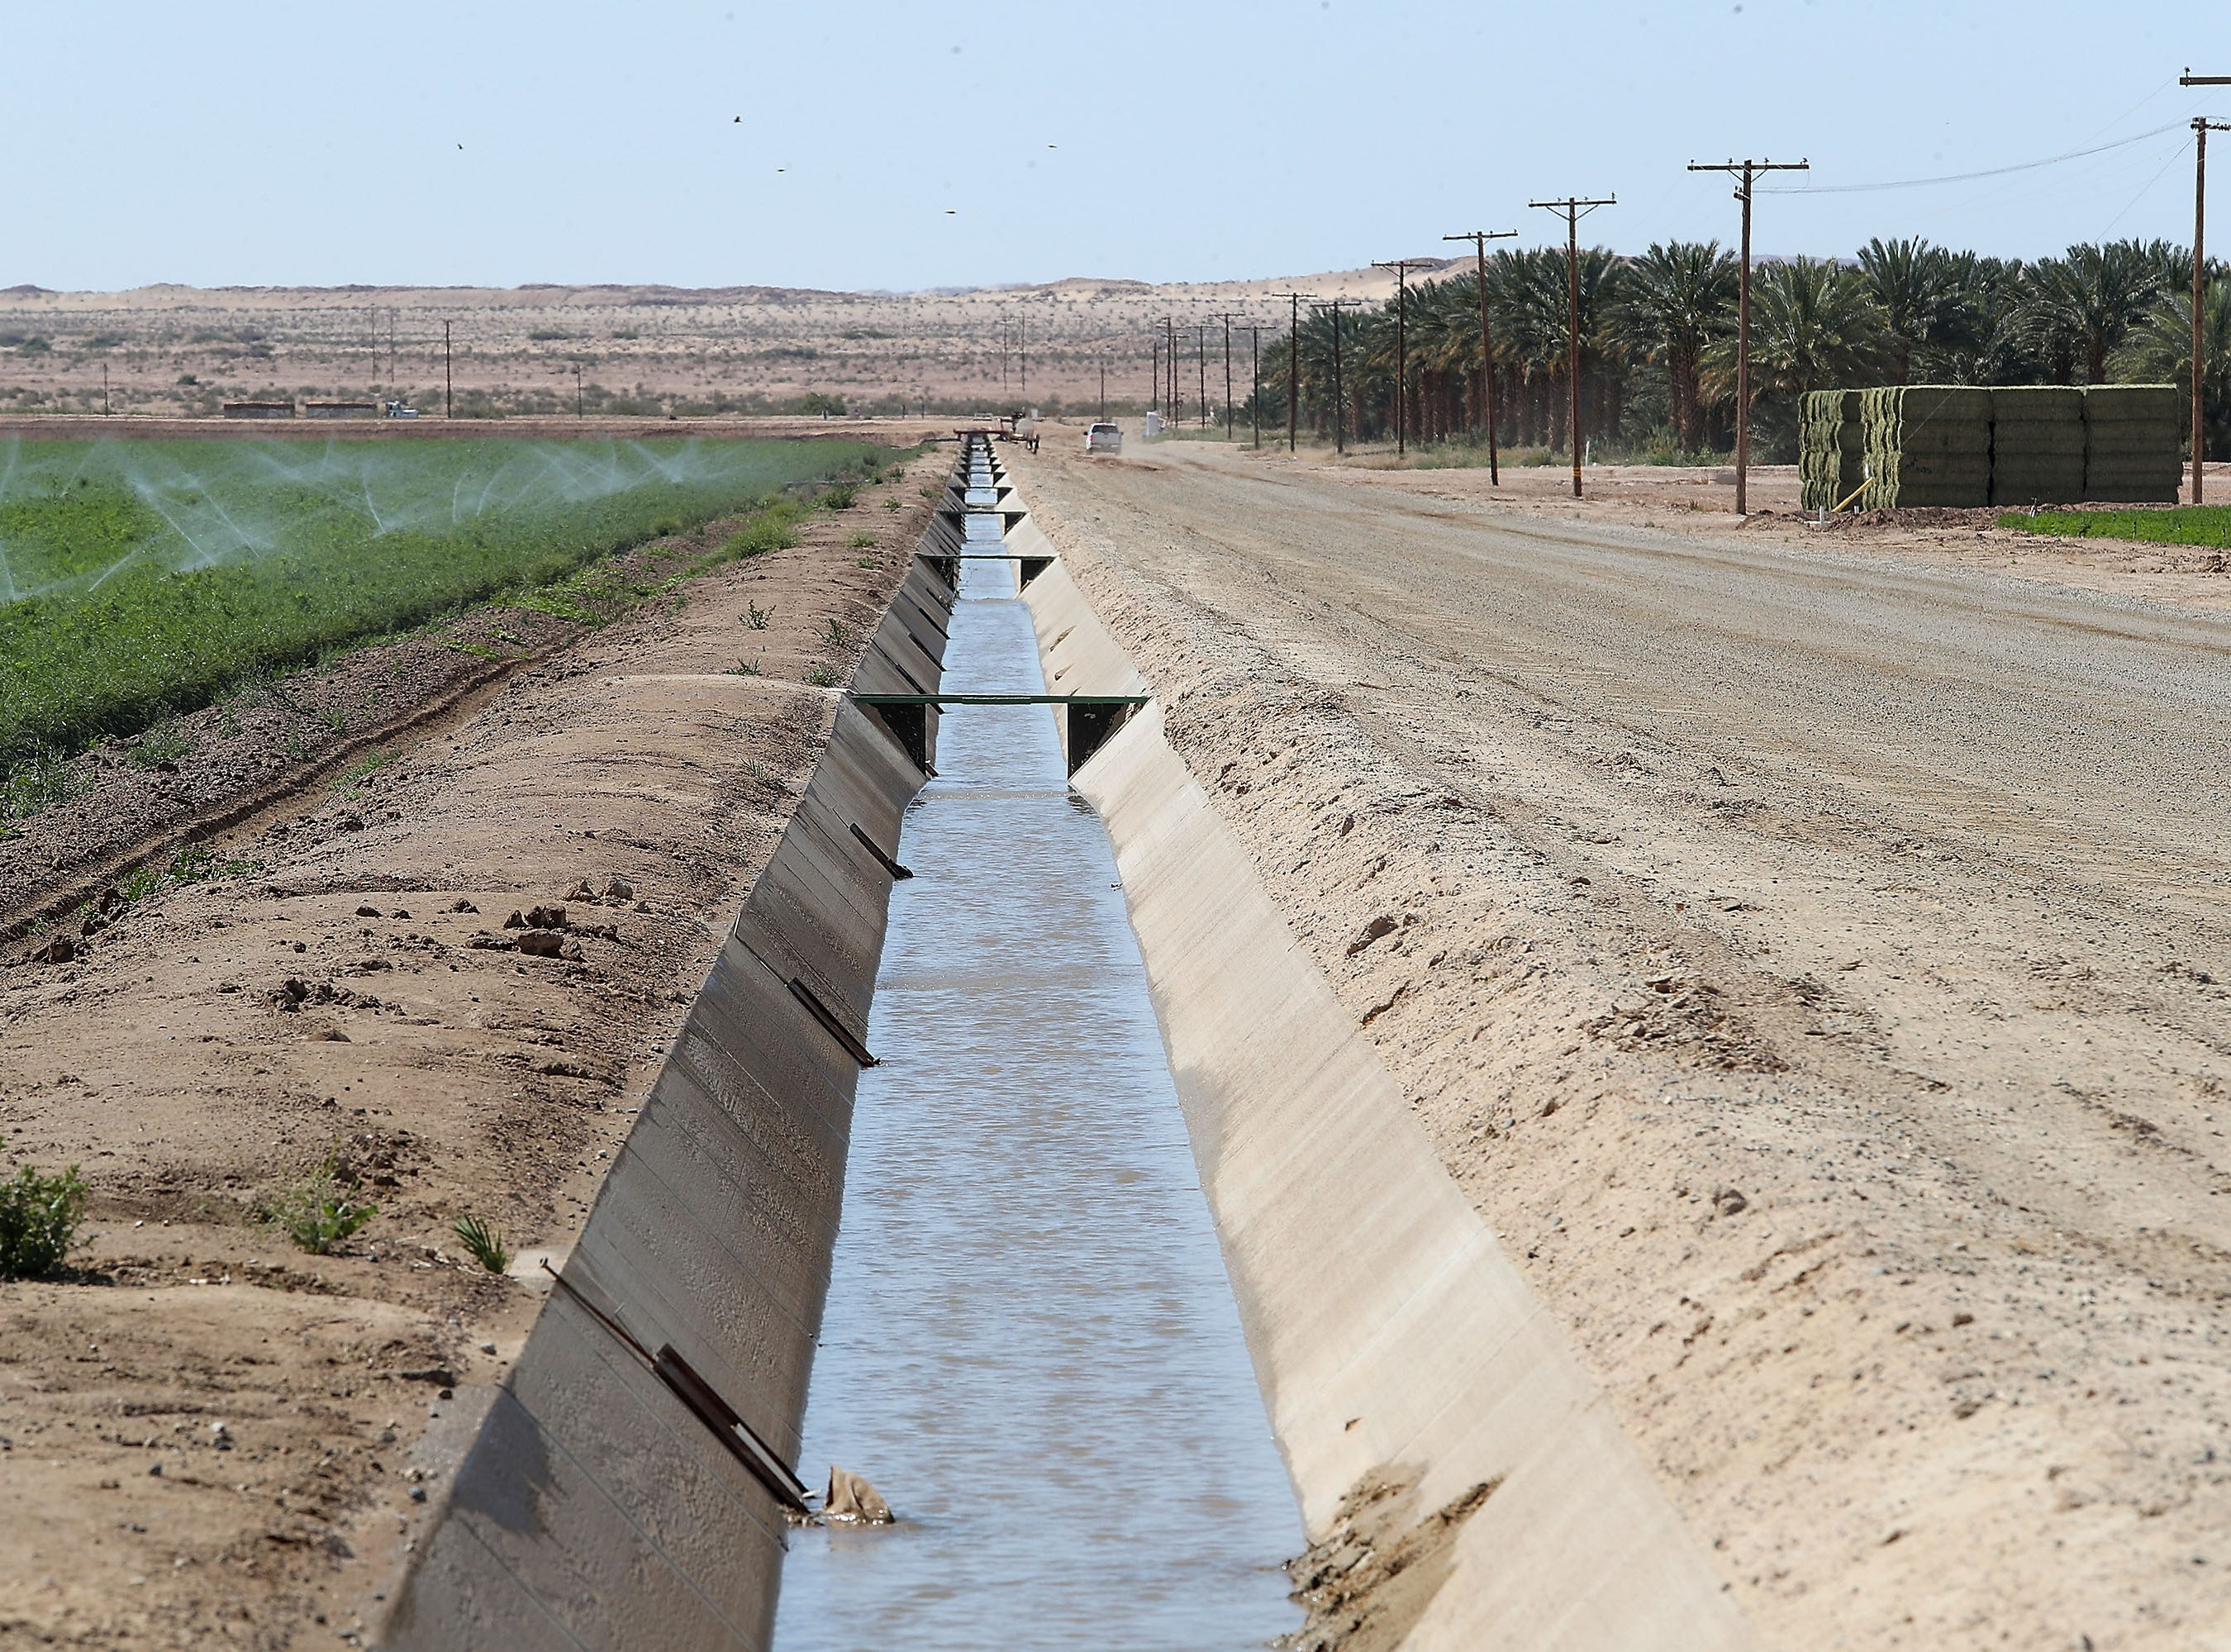 Water flows through a irrigation canal on the Elmore Desert Ranch which sits on the edge of the Salton Sea near Brawley, April 11, 2019.